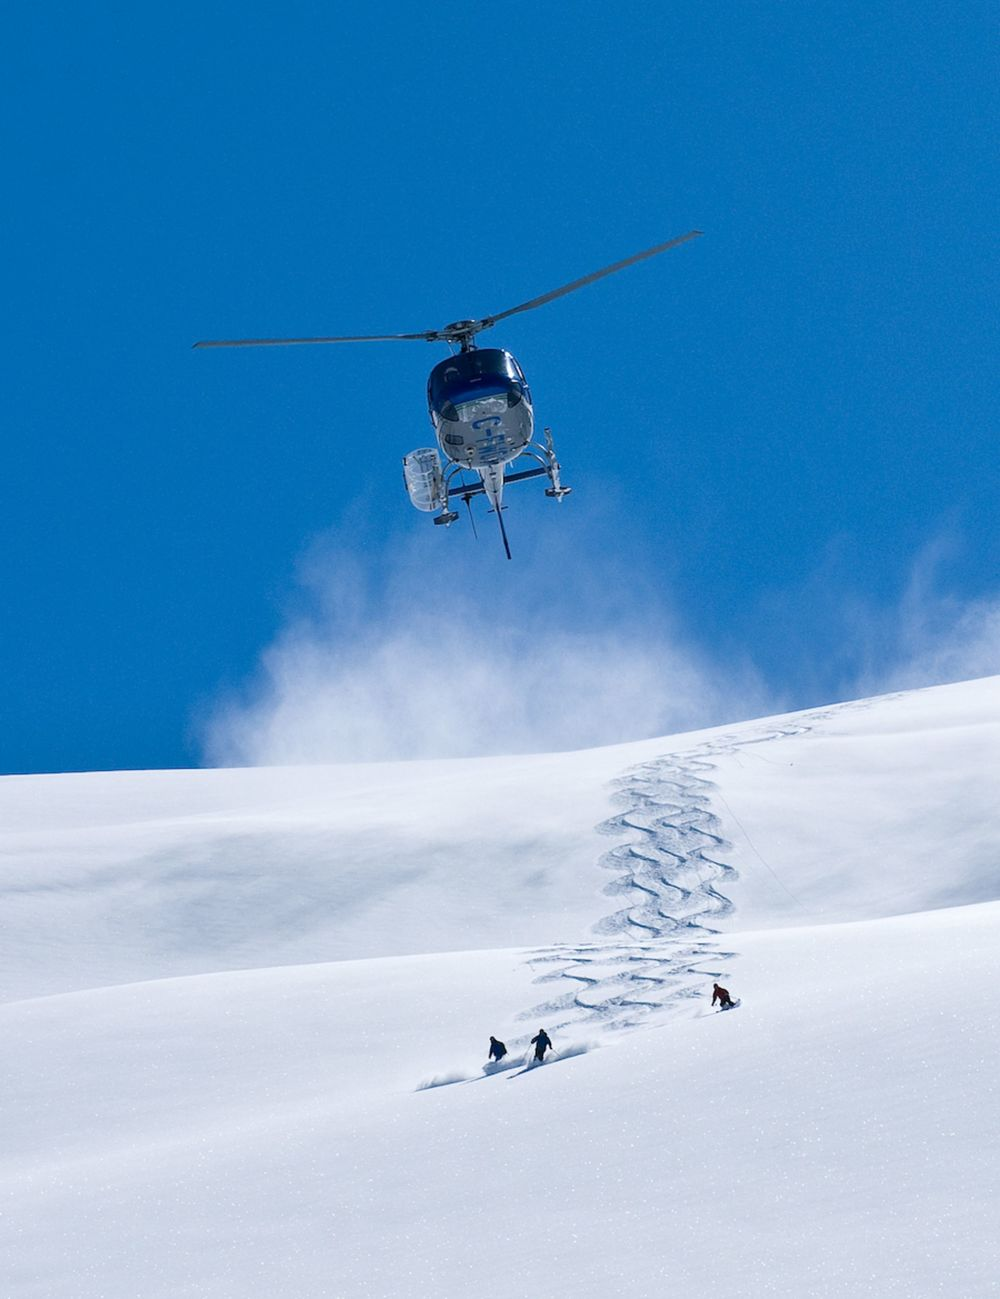 Classic Heli and Skiers photo Eric Berger and Bella Coola Heli Sports copy.jpg